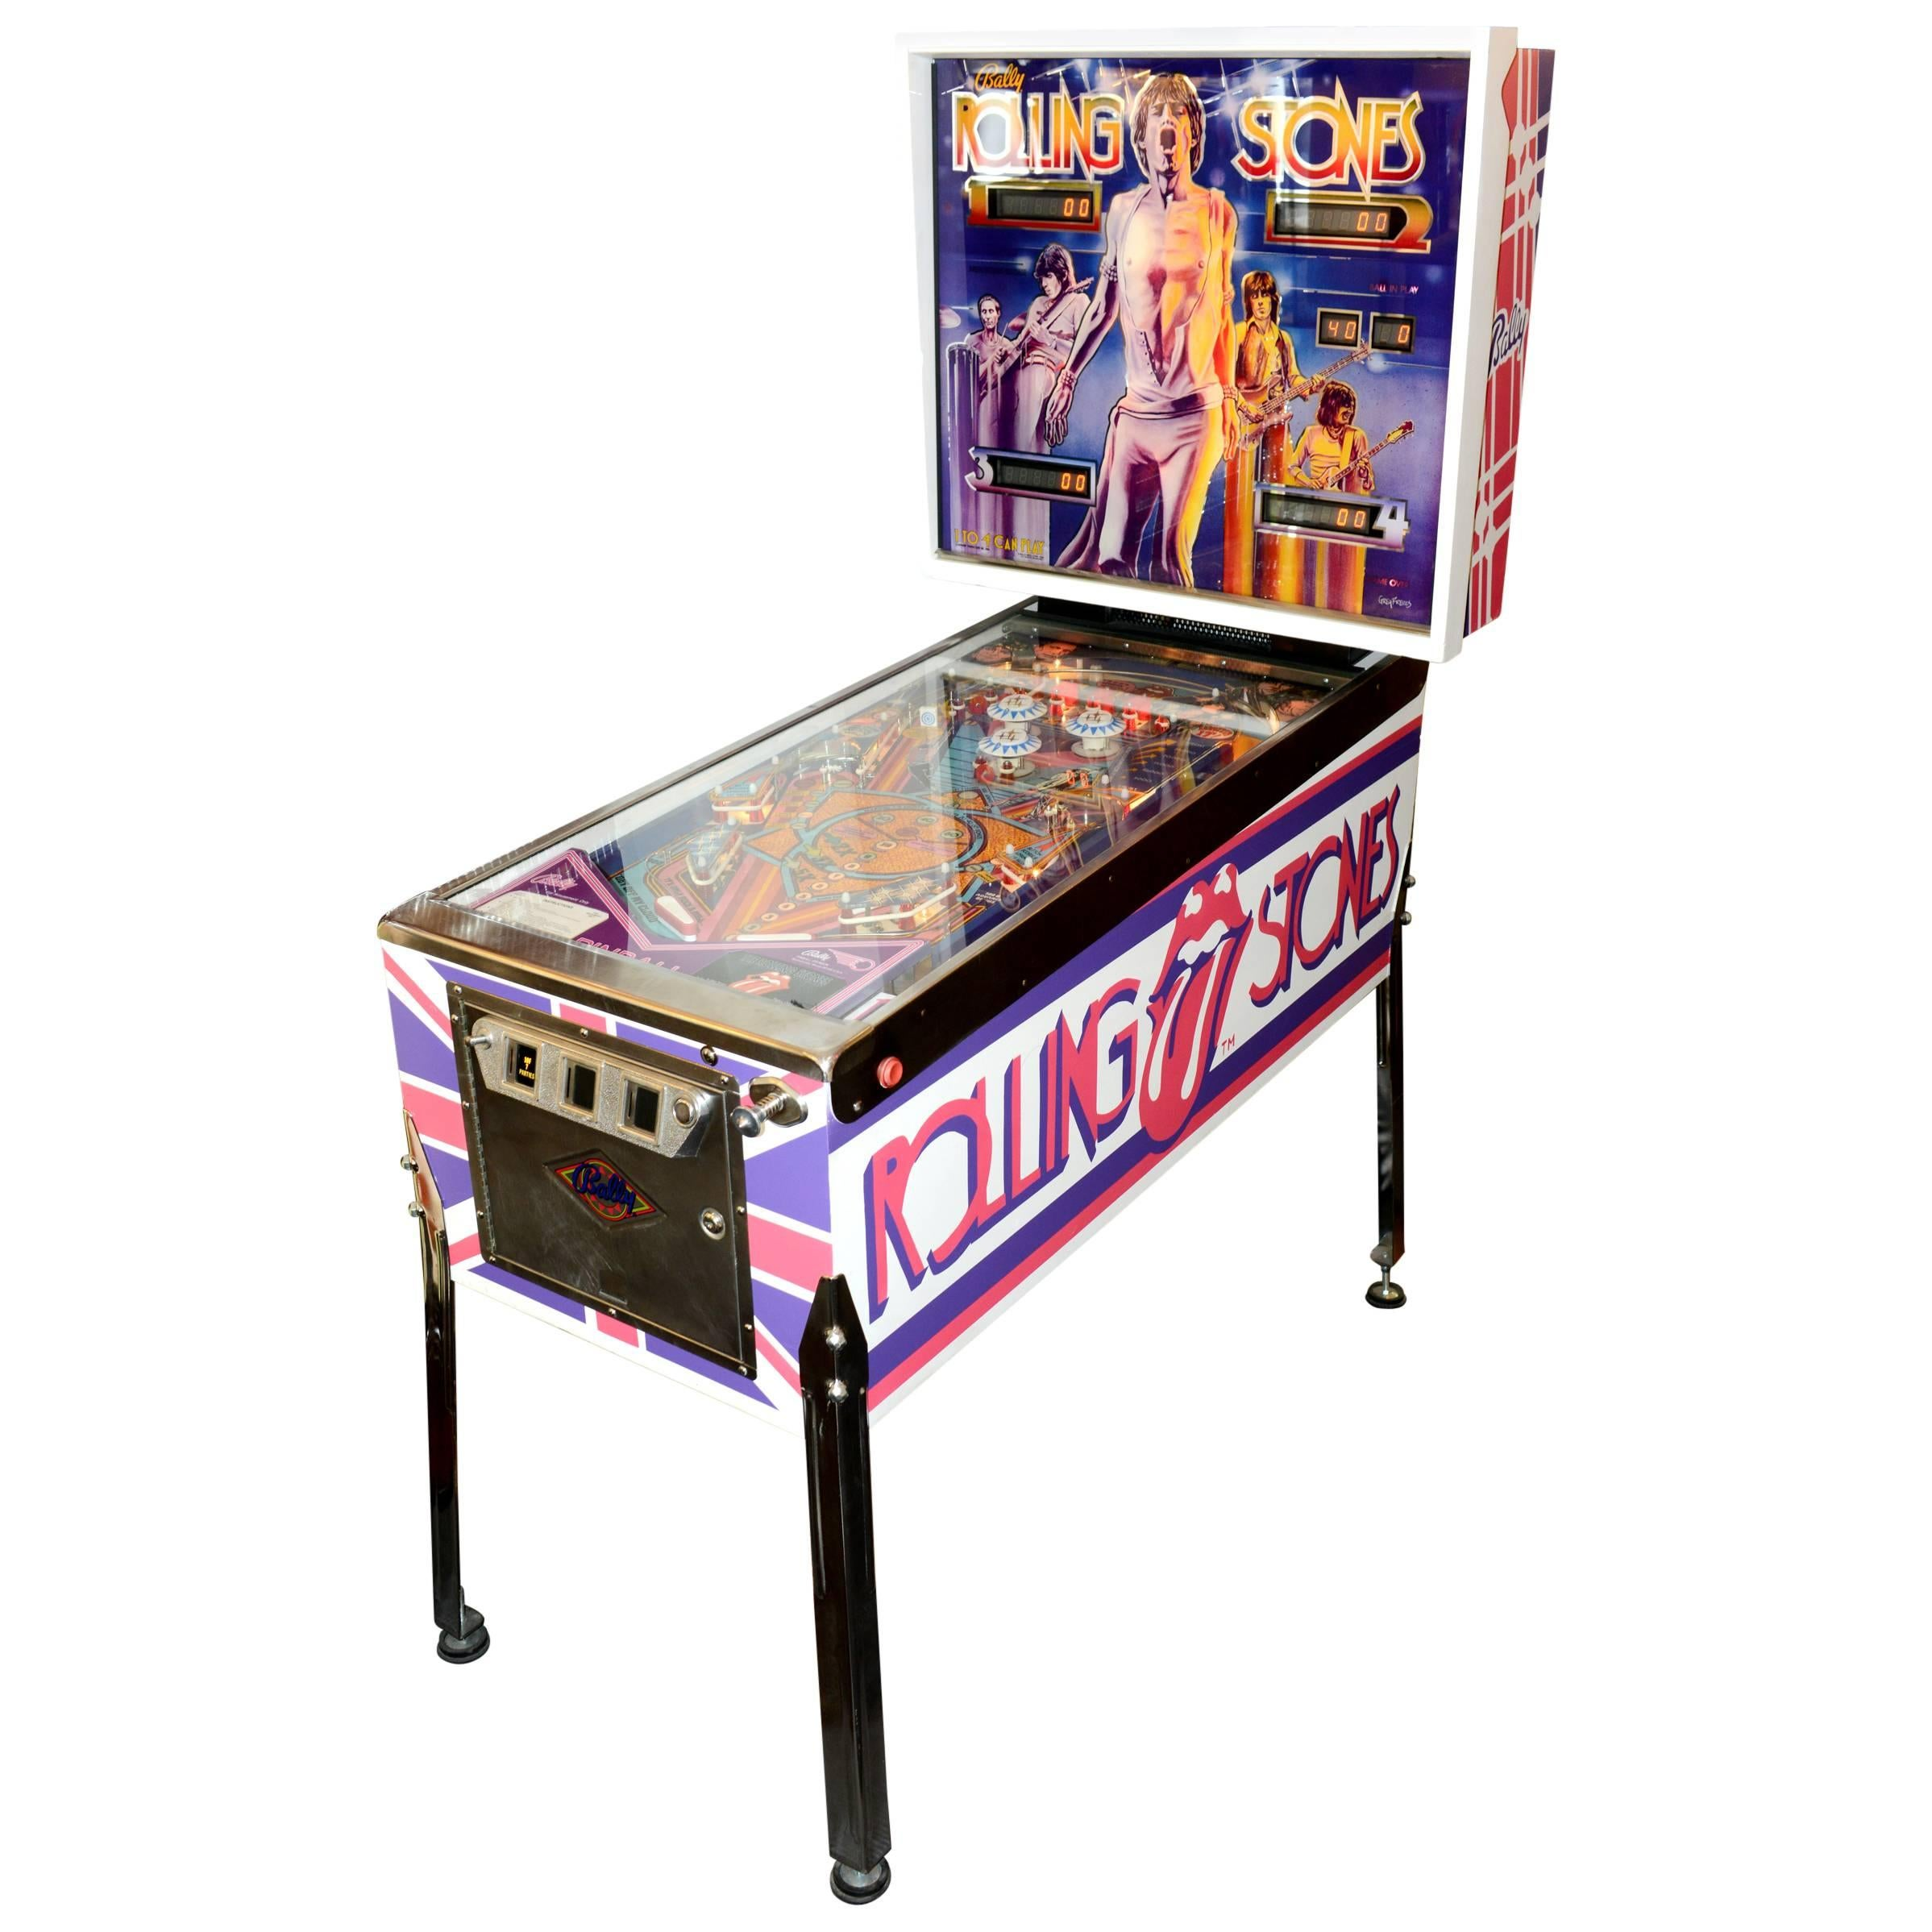 Pinball Rolling Stones Collector 1980s Completely Revised